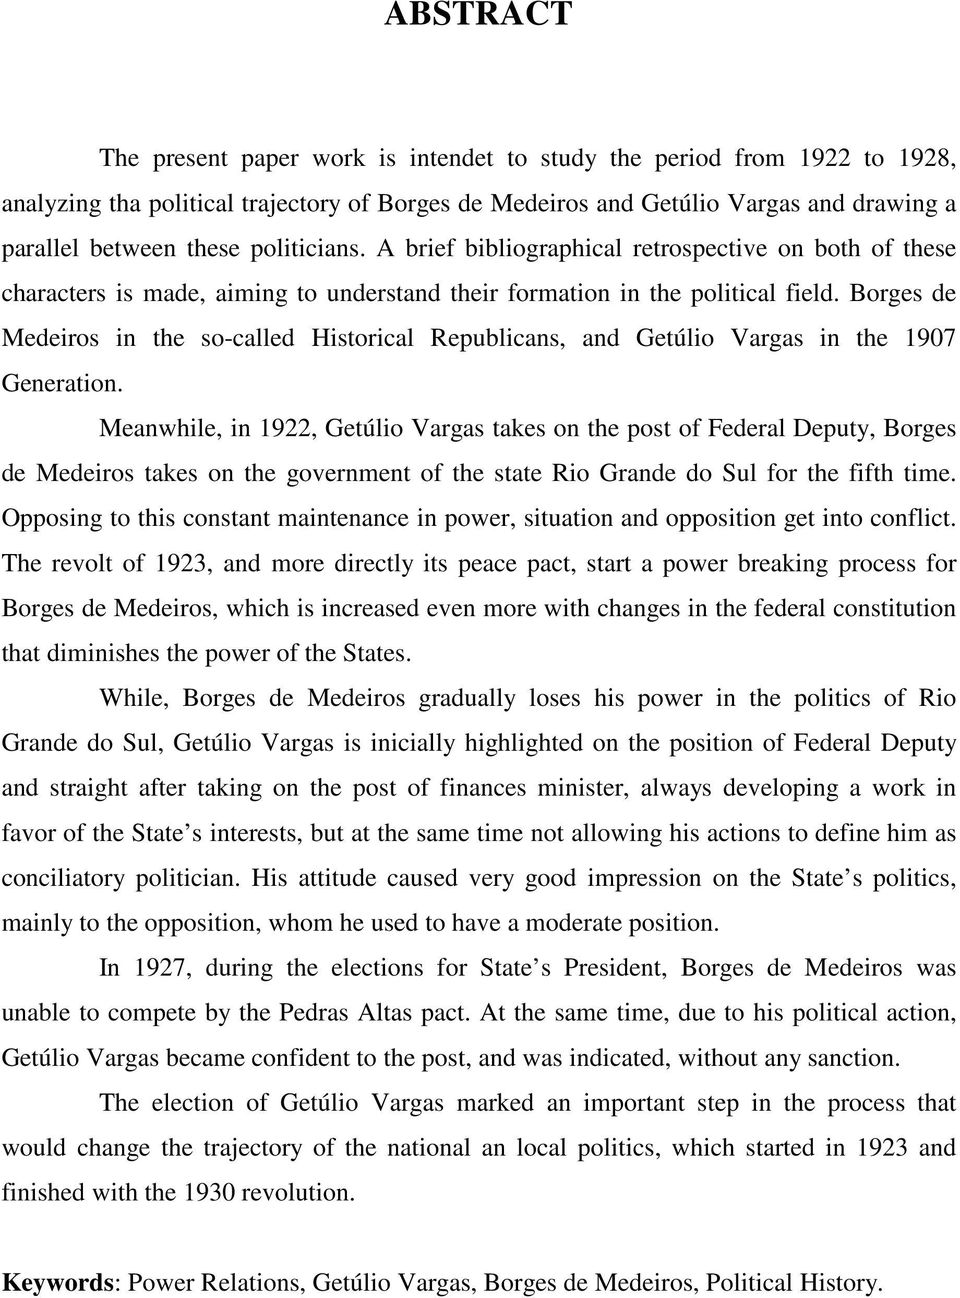 Borges de Medeiros in the so-called Historical Republicans, and Getúlio Vargas in the 1907 Generation.